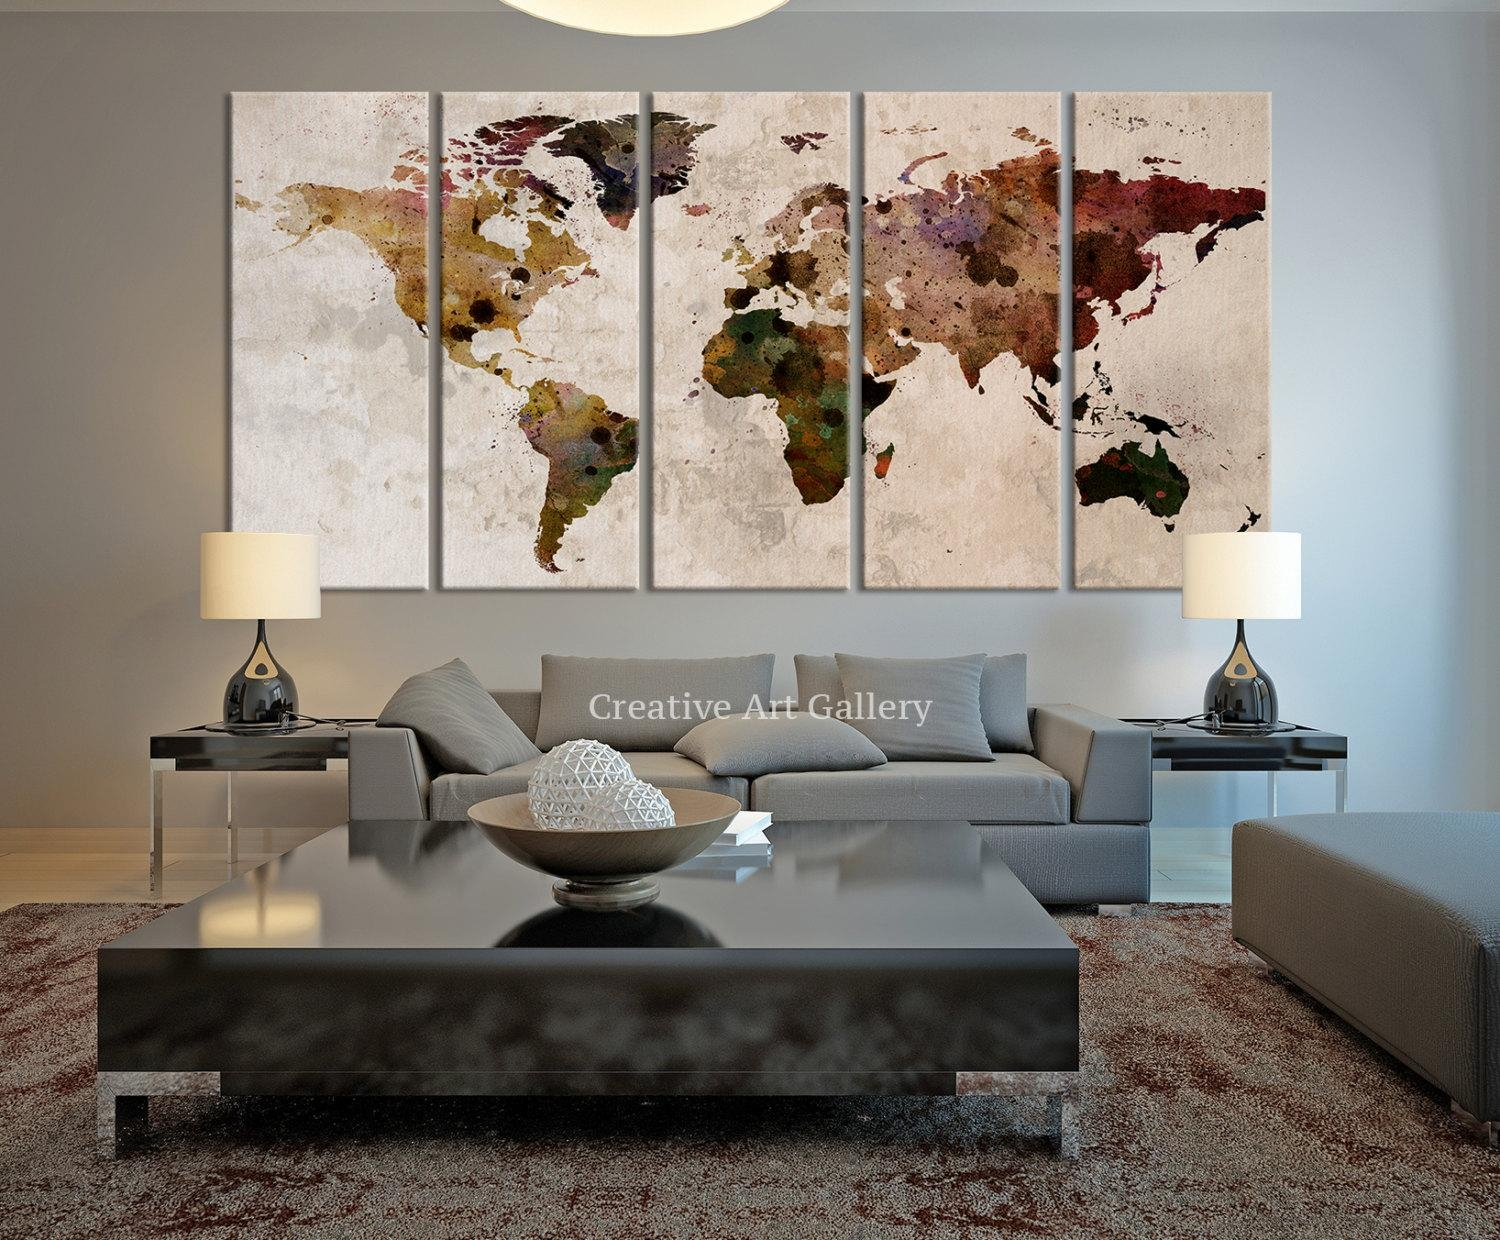 Wall Ideas: Extra Large Wall Art Images (Image 20 of 20)